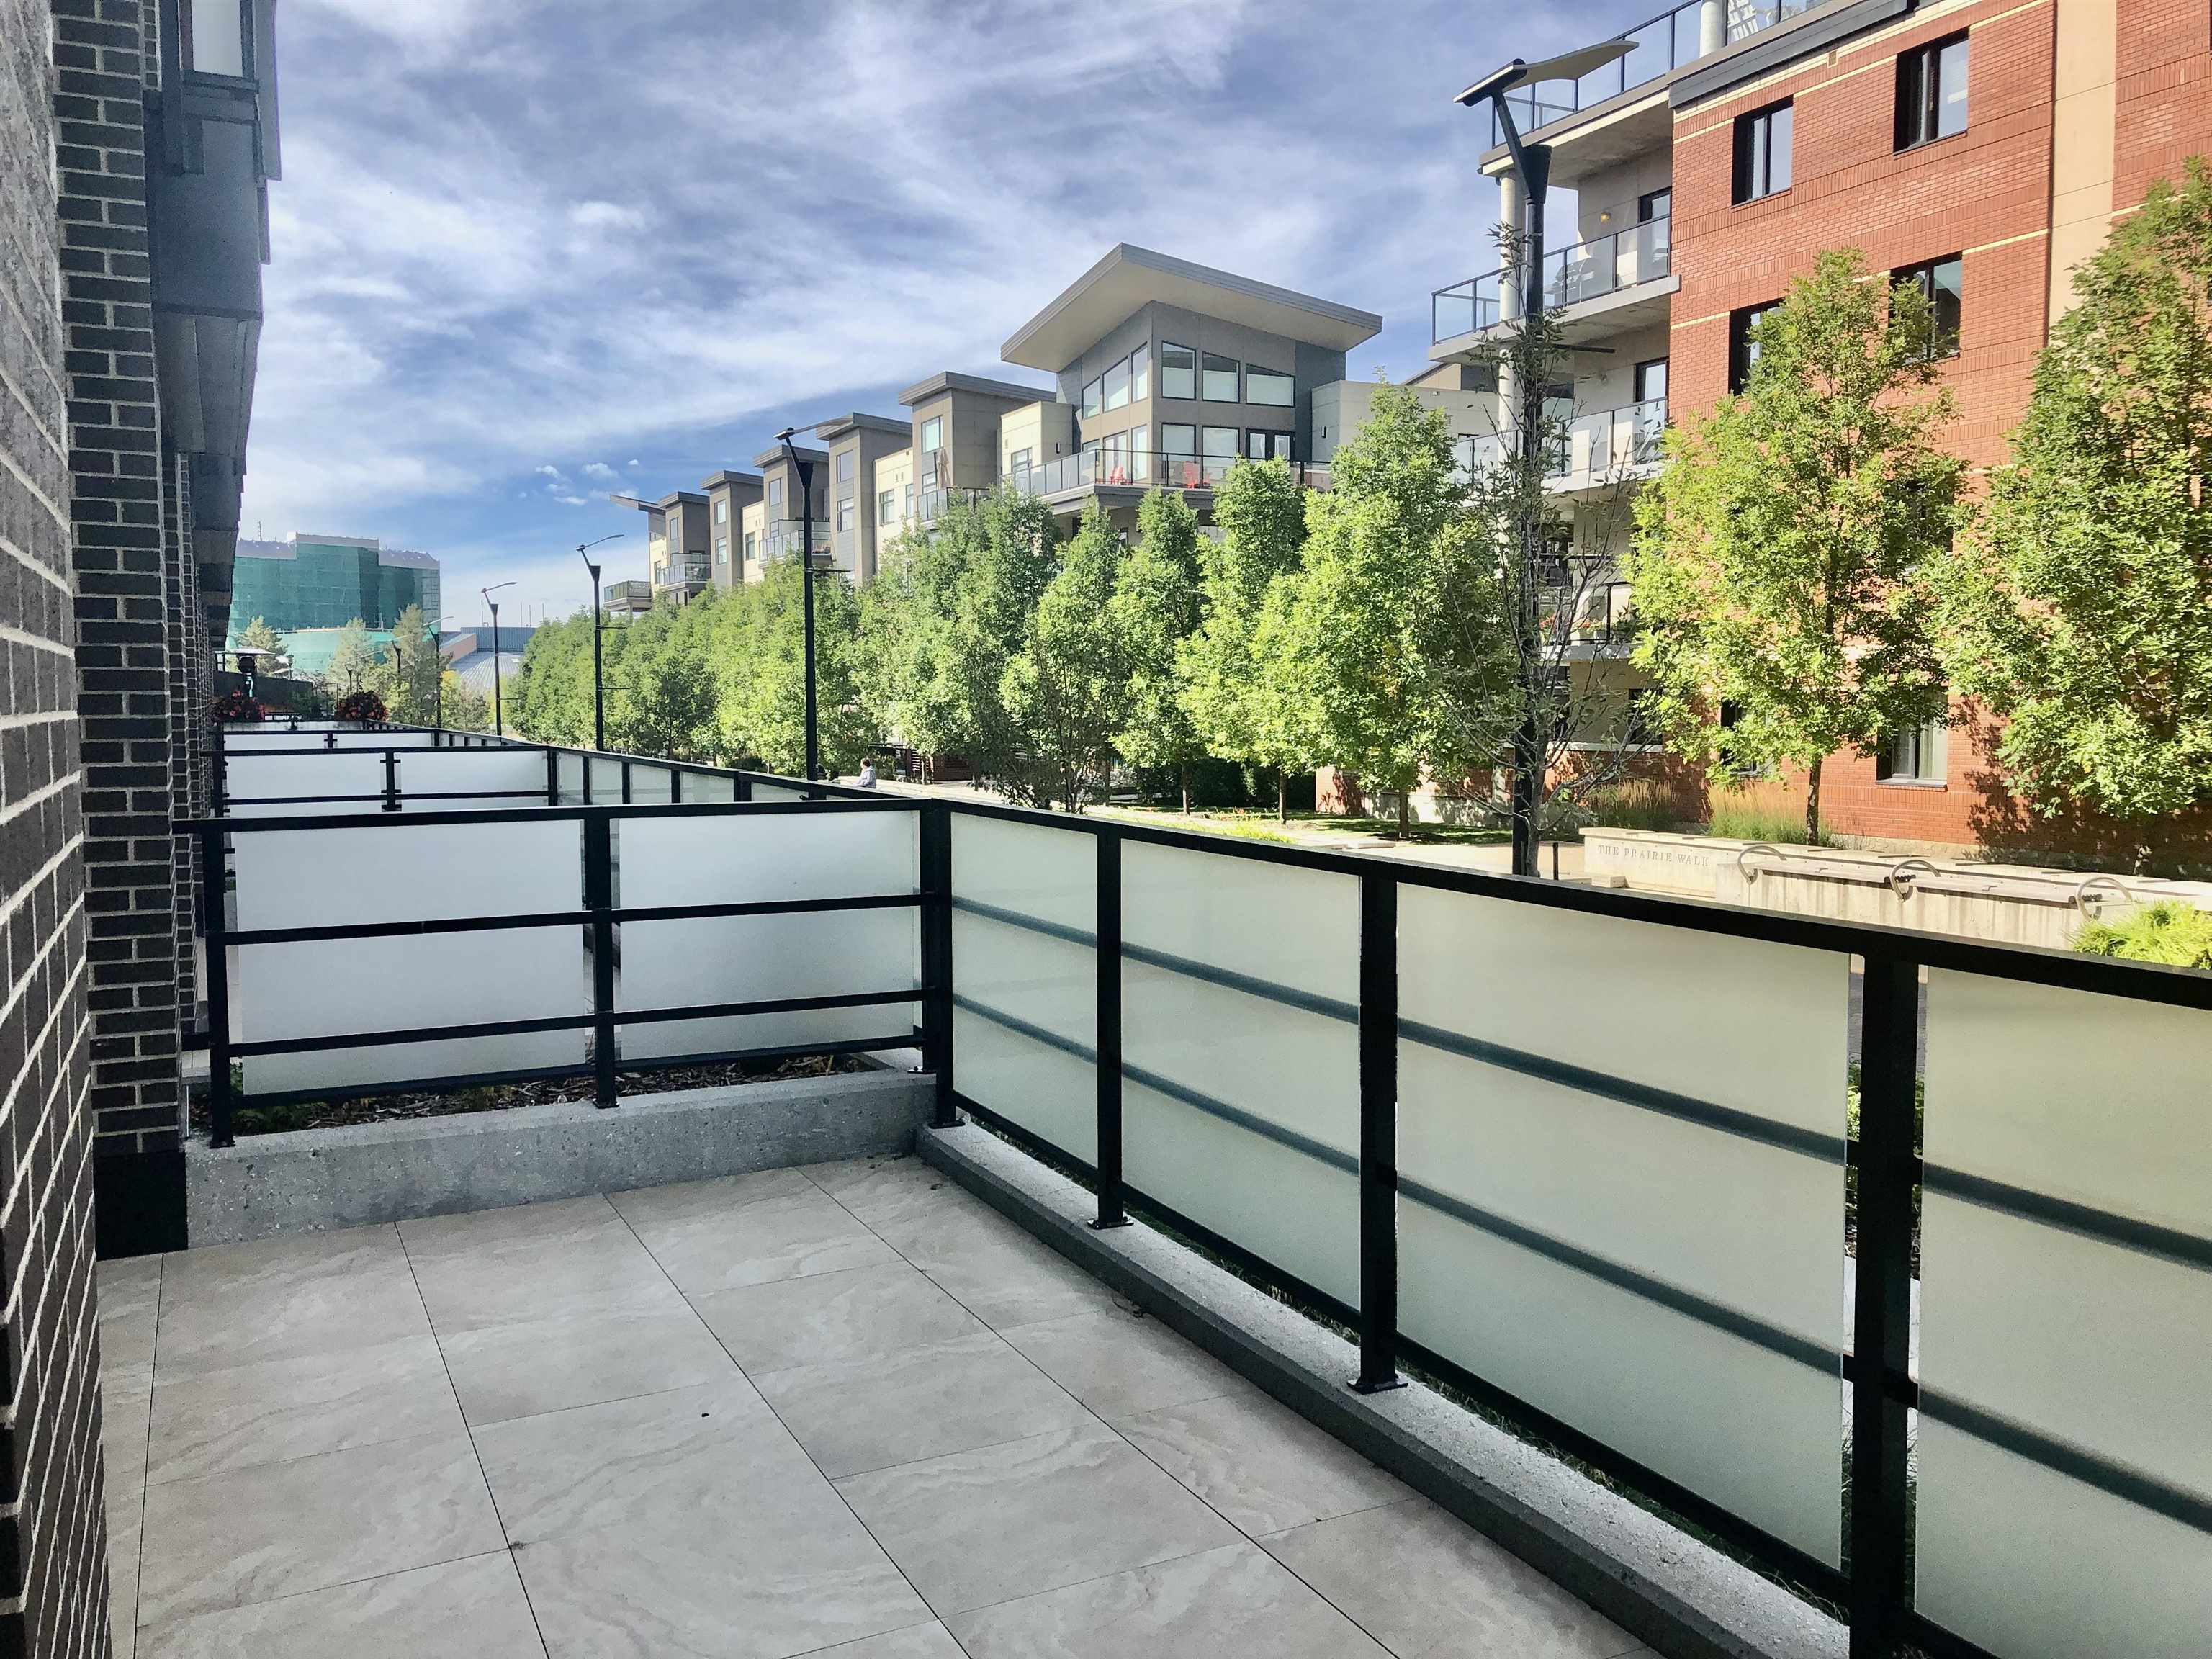 Pleasantly surprised-Savona Sherwood Park.  $367,098 + $18,354.90 GST = $385,452.90. The highest quality condominiums not an airplane flight away. Right here. The heart of Sherwood Park. Live in luxury where you need to be. Suite 124 provides a convenient suite on the park like & well treed Prairie Walkway. A beautiful spot for visits. Raised garden beds. Quick access to retail, cultural and sport facilities. If you live in a house now or have a home office & appointments through the day, then this main floor suite is a perfect choice. Work-Play-Comfort-Convenience. Remember the goals: Value for money, location, close to friends and family, quality builder that backs their product, enjoyable location. Energy efficiency through GEO THERMAL heating & cooling. Your home in the heart of it all in one of Western Canada's most vibrant, feisty & active communities - Sherwood Park, Strathcona County. SAVONA SIMPLY SATISFIES.